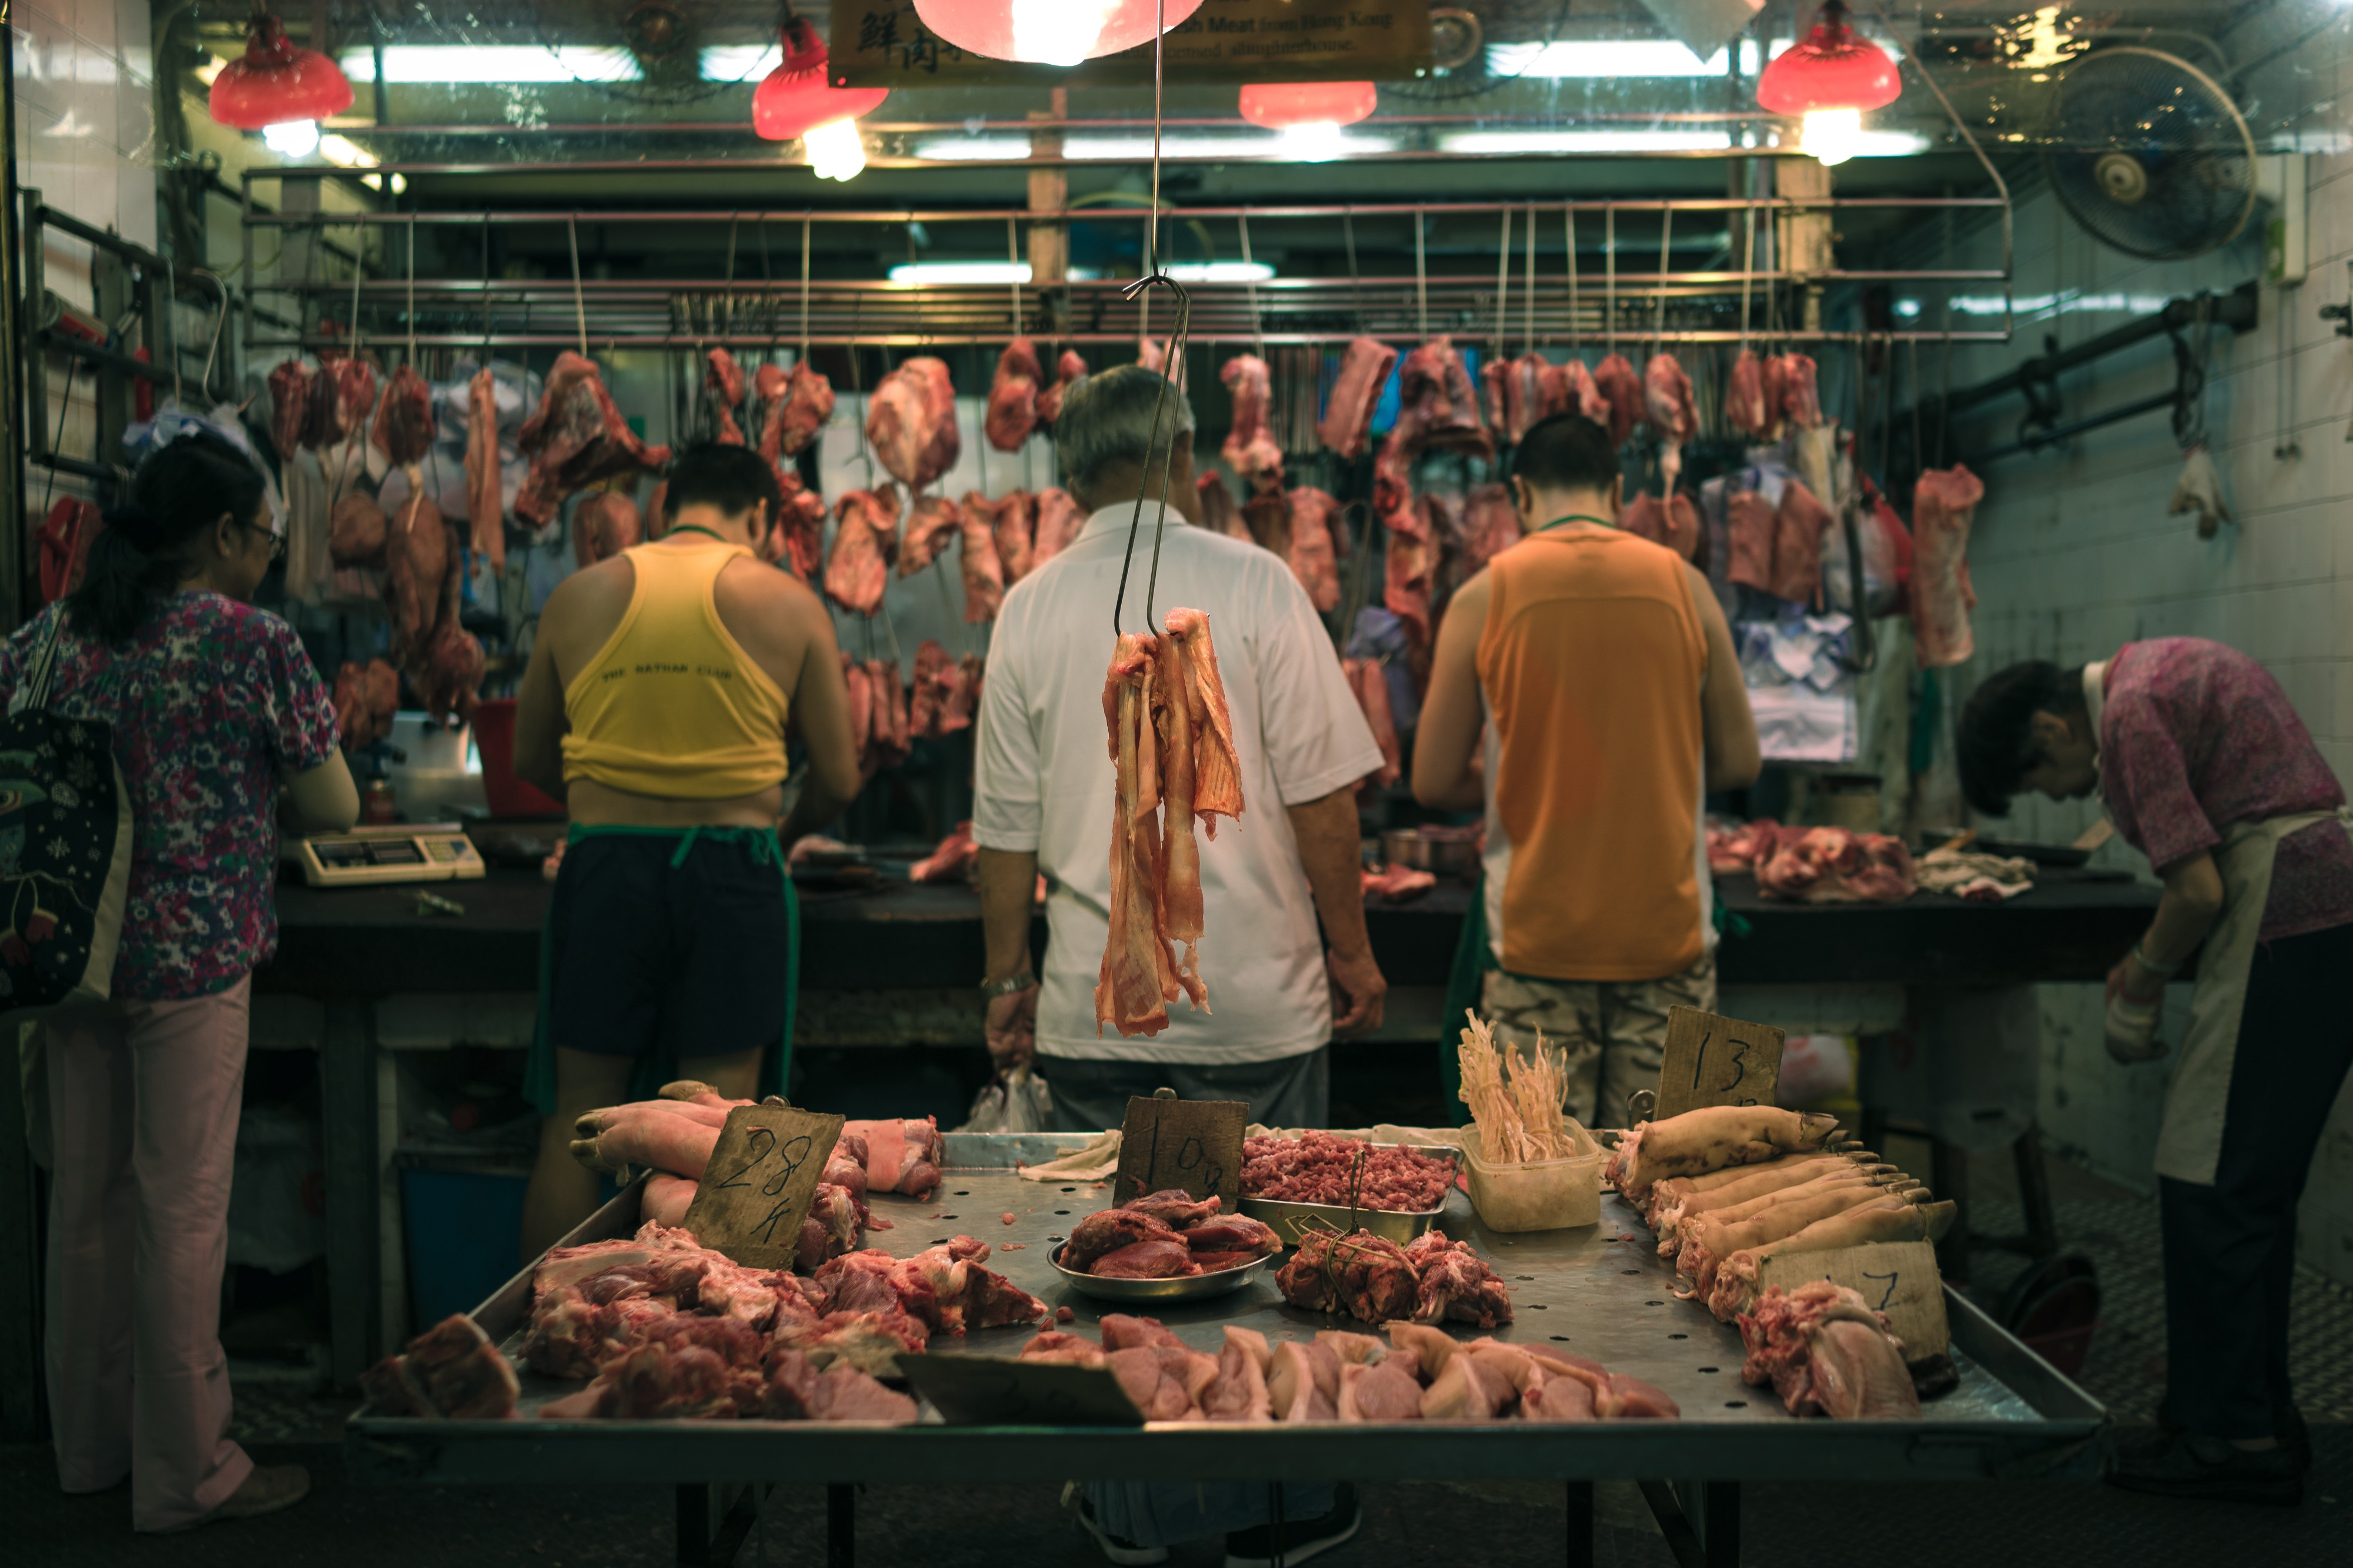 A meat market in asia